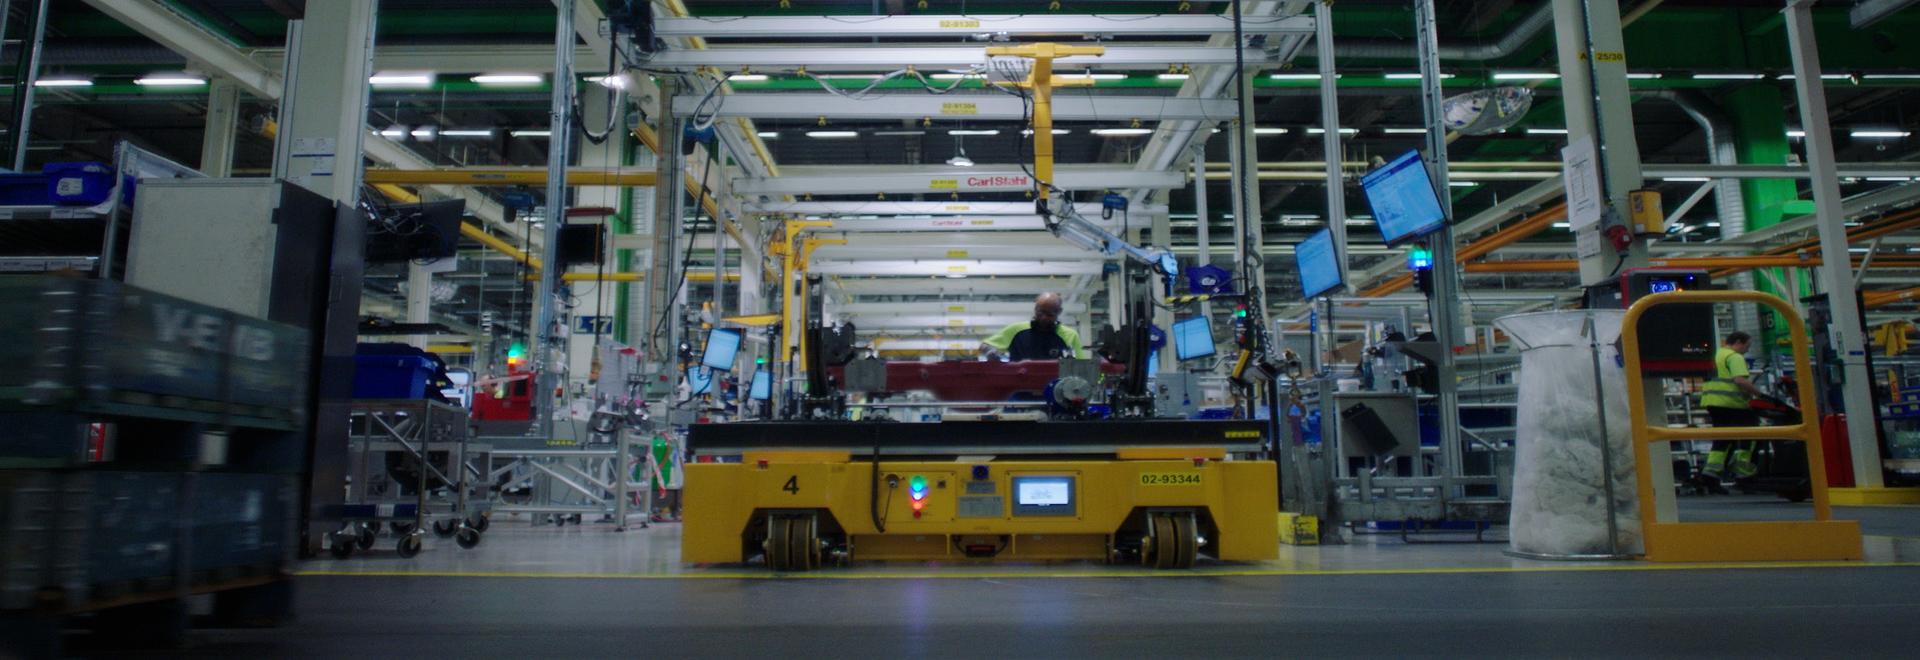 VOLVO CE DELIVERS ITS VISION OF THE FACTORY 4 TOMORROW